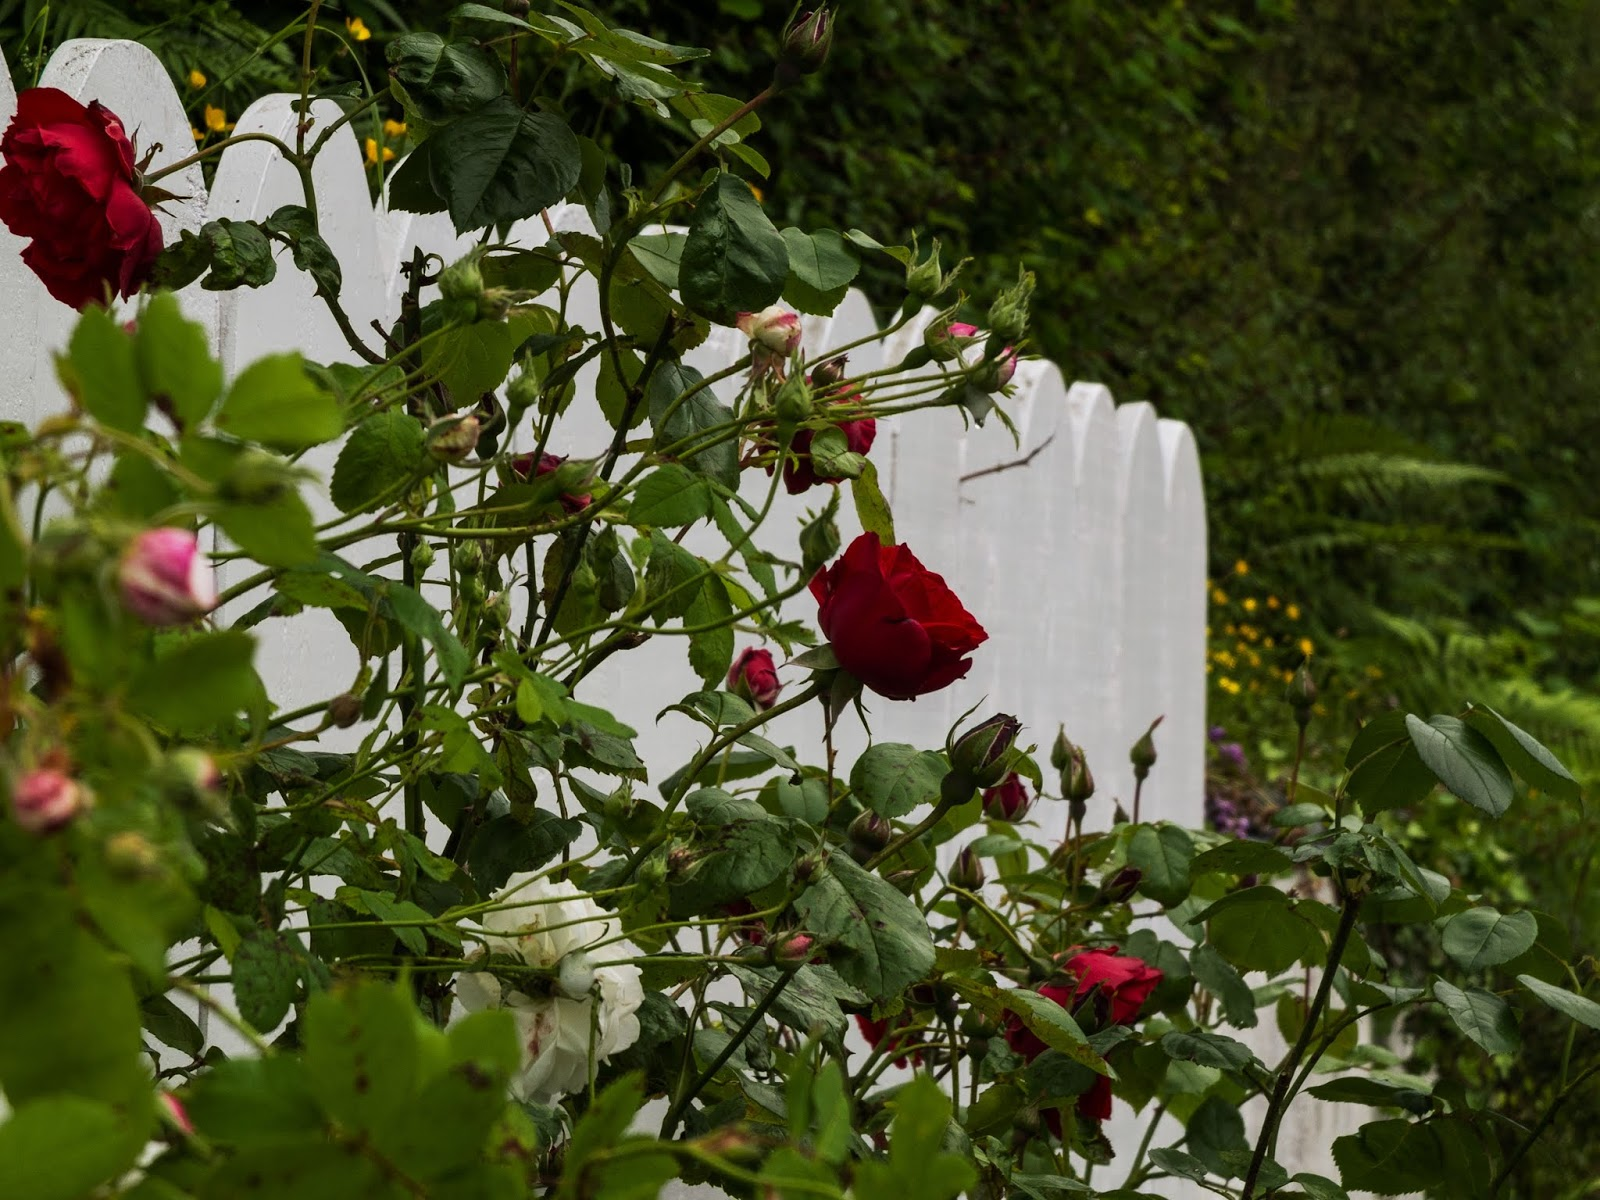 Red and White rose bush with a white scalloped fence in the garden.